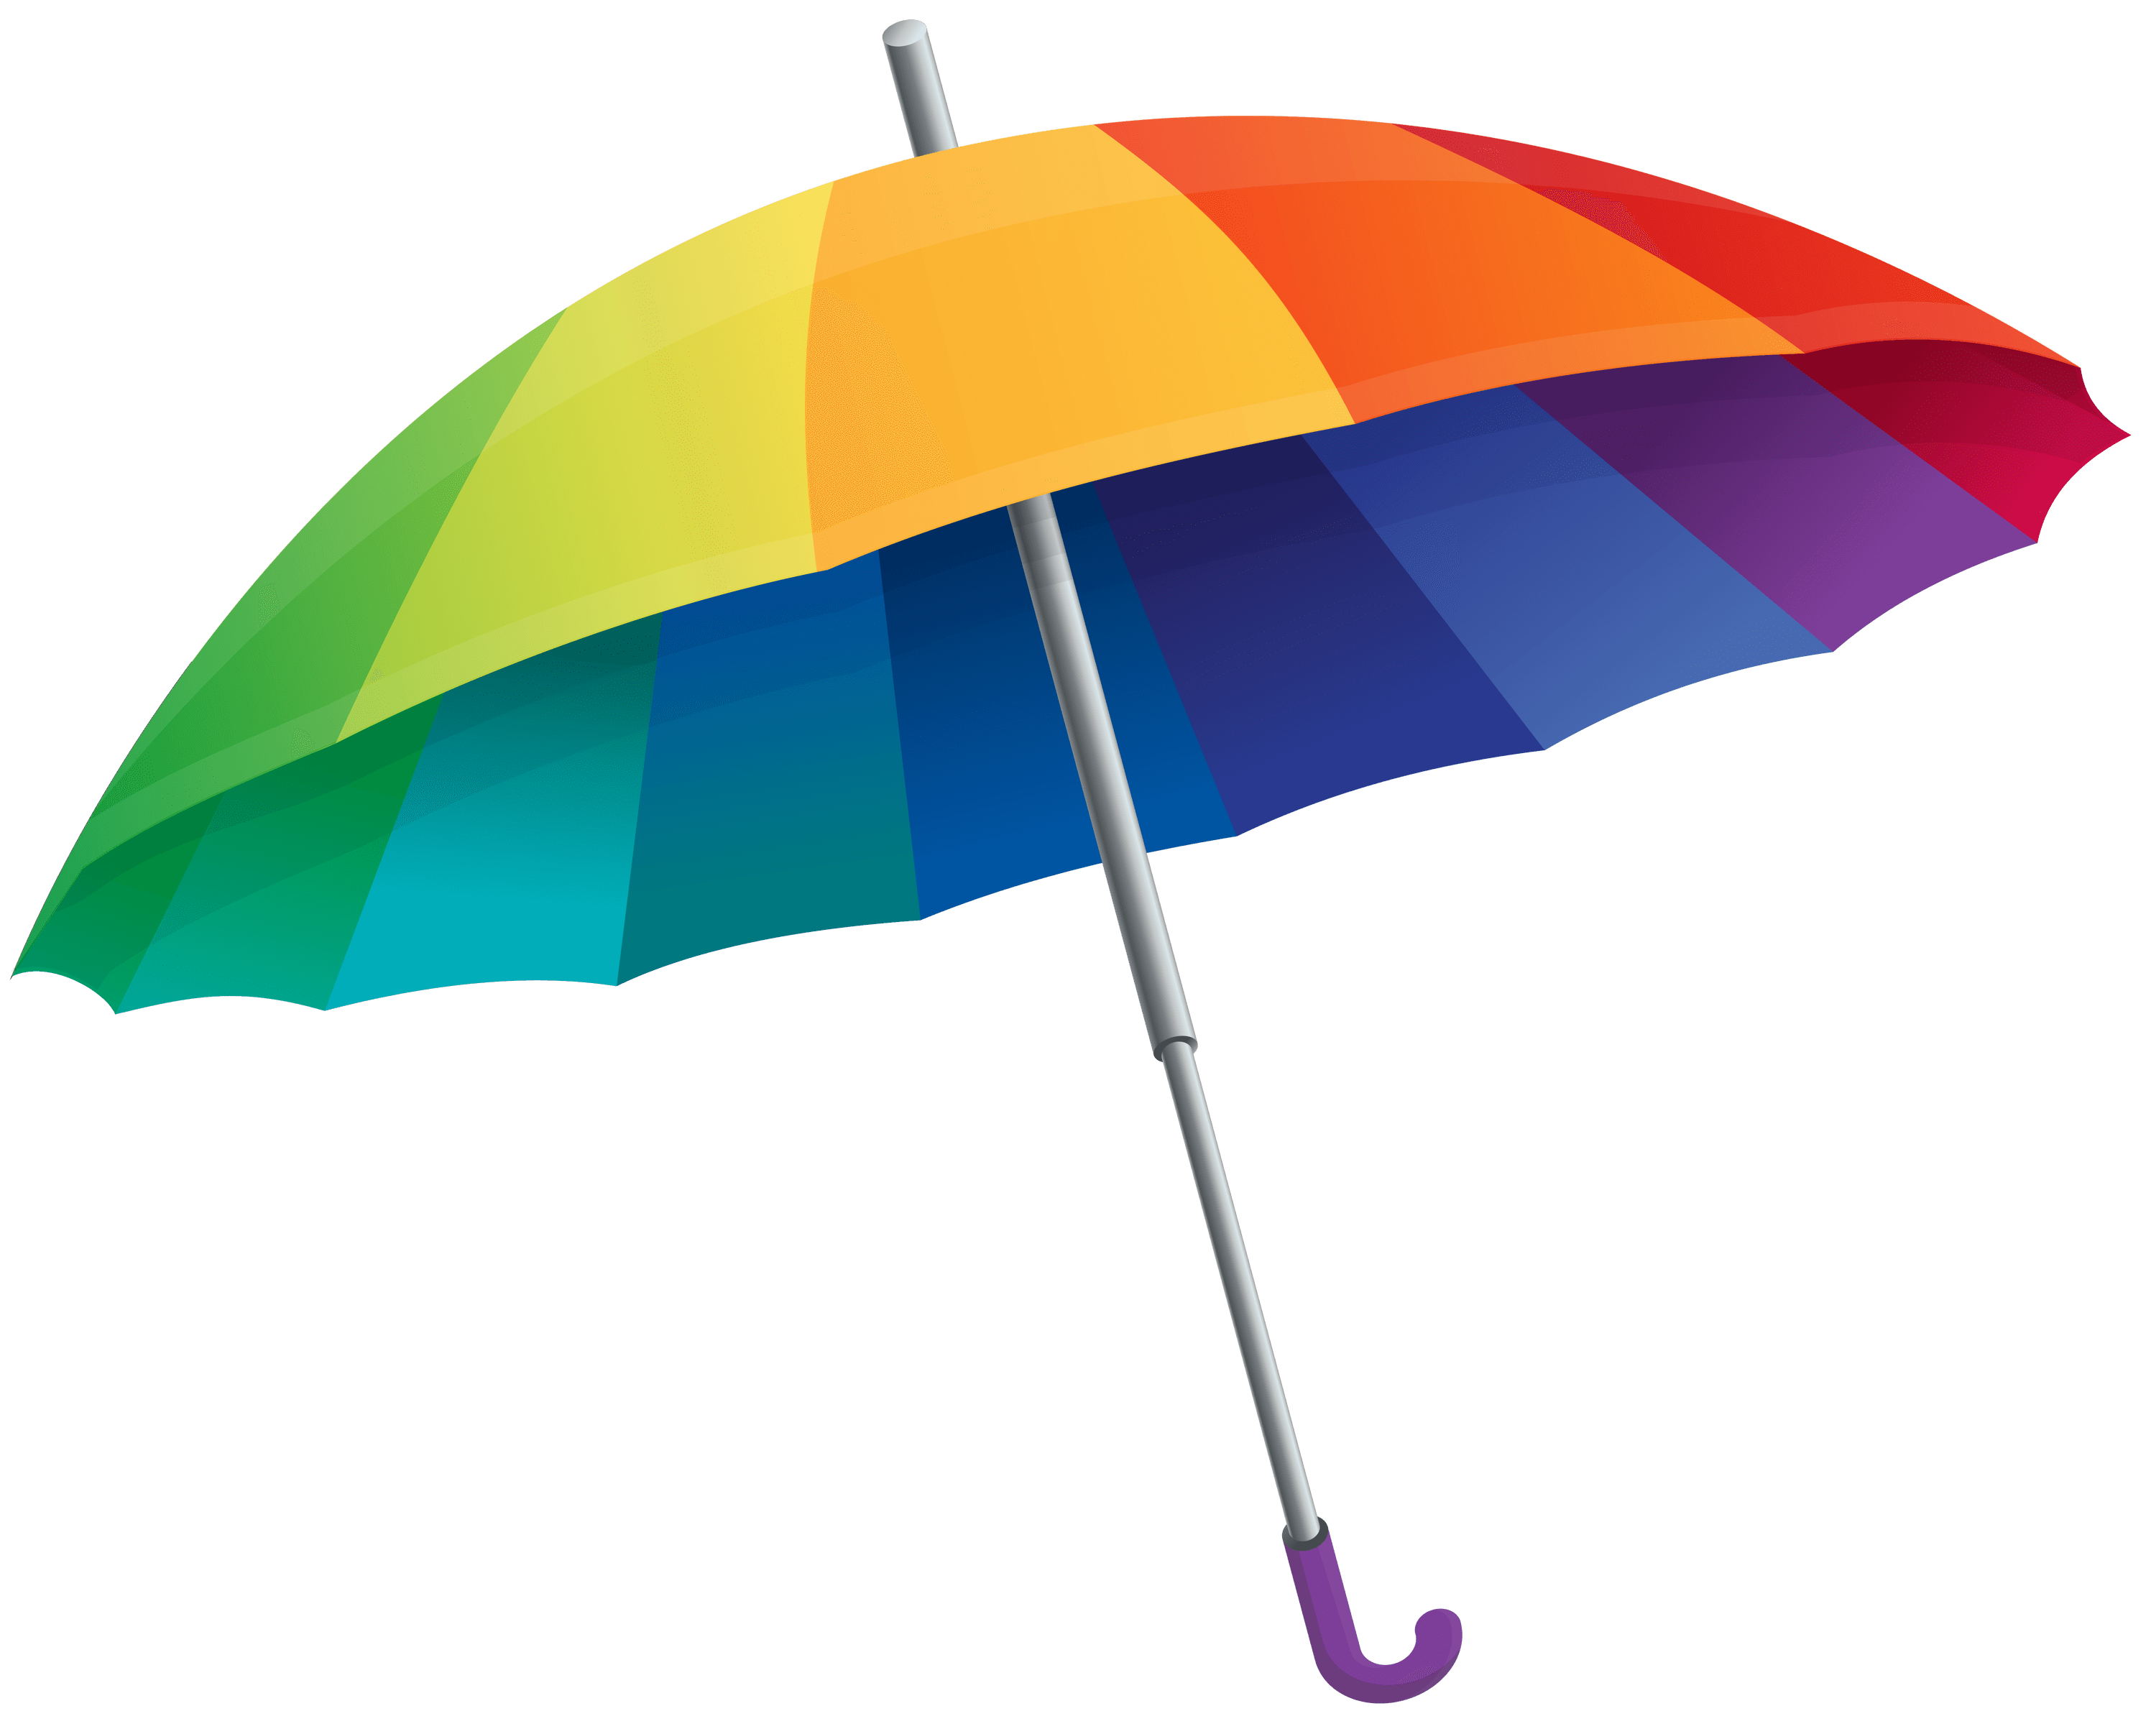 Umbrella transparent background